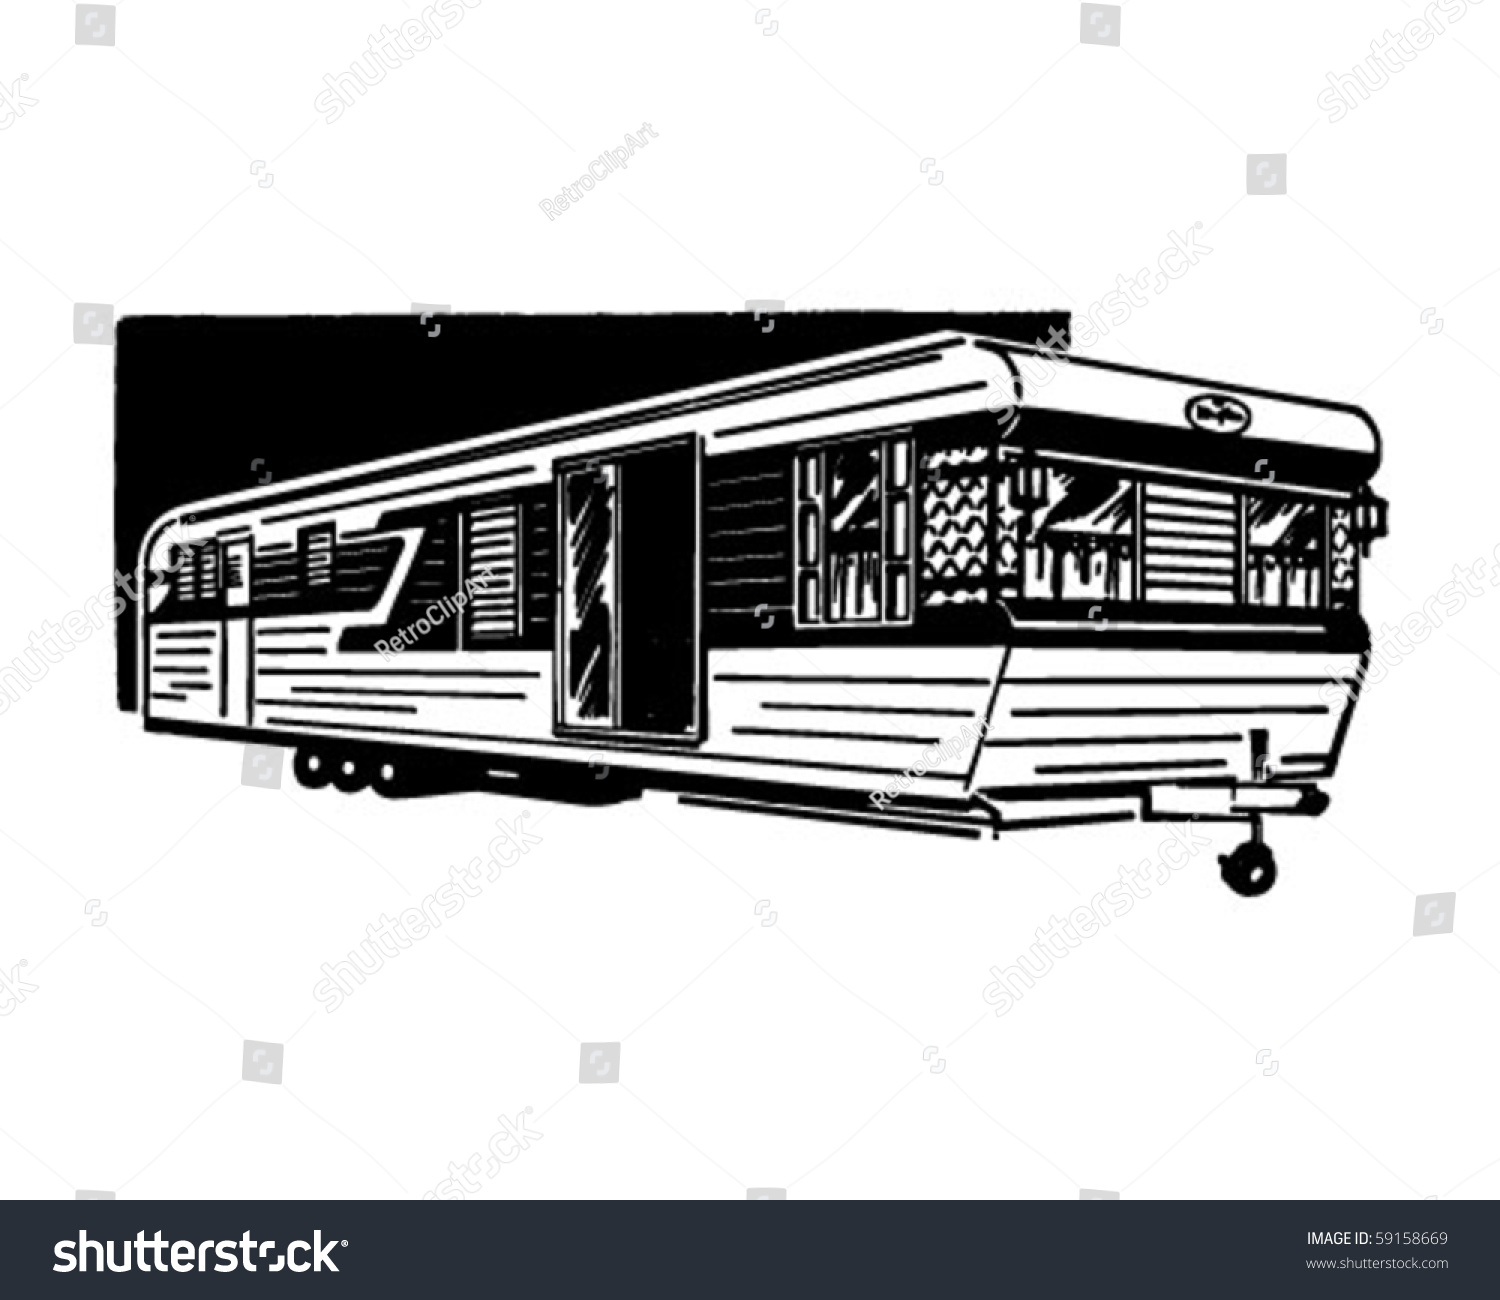 clipart mobile home - photo #11